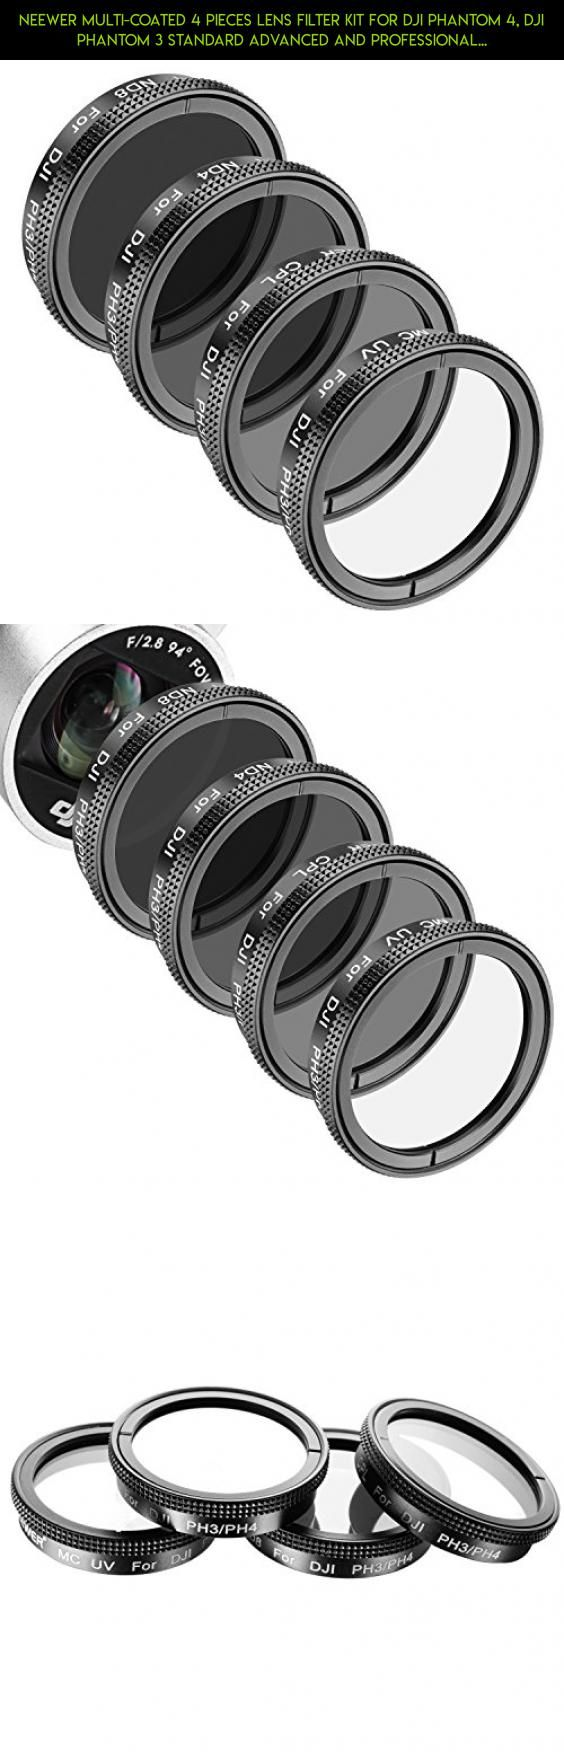 Neewer Multi-coated 4 Pieces Lens Filter Kit for DJI Phantom 4, DJI Phantom 3 Standard Advanced and Professional, Made of High Definition Glass and Aluminum Frame, Includes: UV, Polarizer CPL, ND4,ND8 #tech #standard #3 #camera #fpv #lens #kit #drone #racing #phantom #shopping #gadgets #plans #dji #technology #parts #products #djiphantom3professional